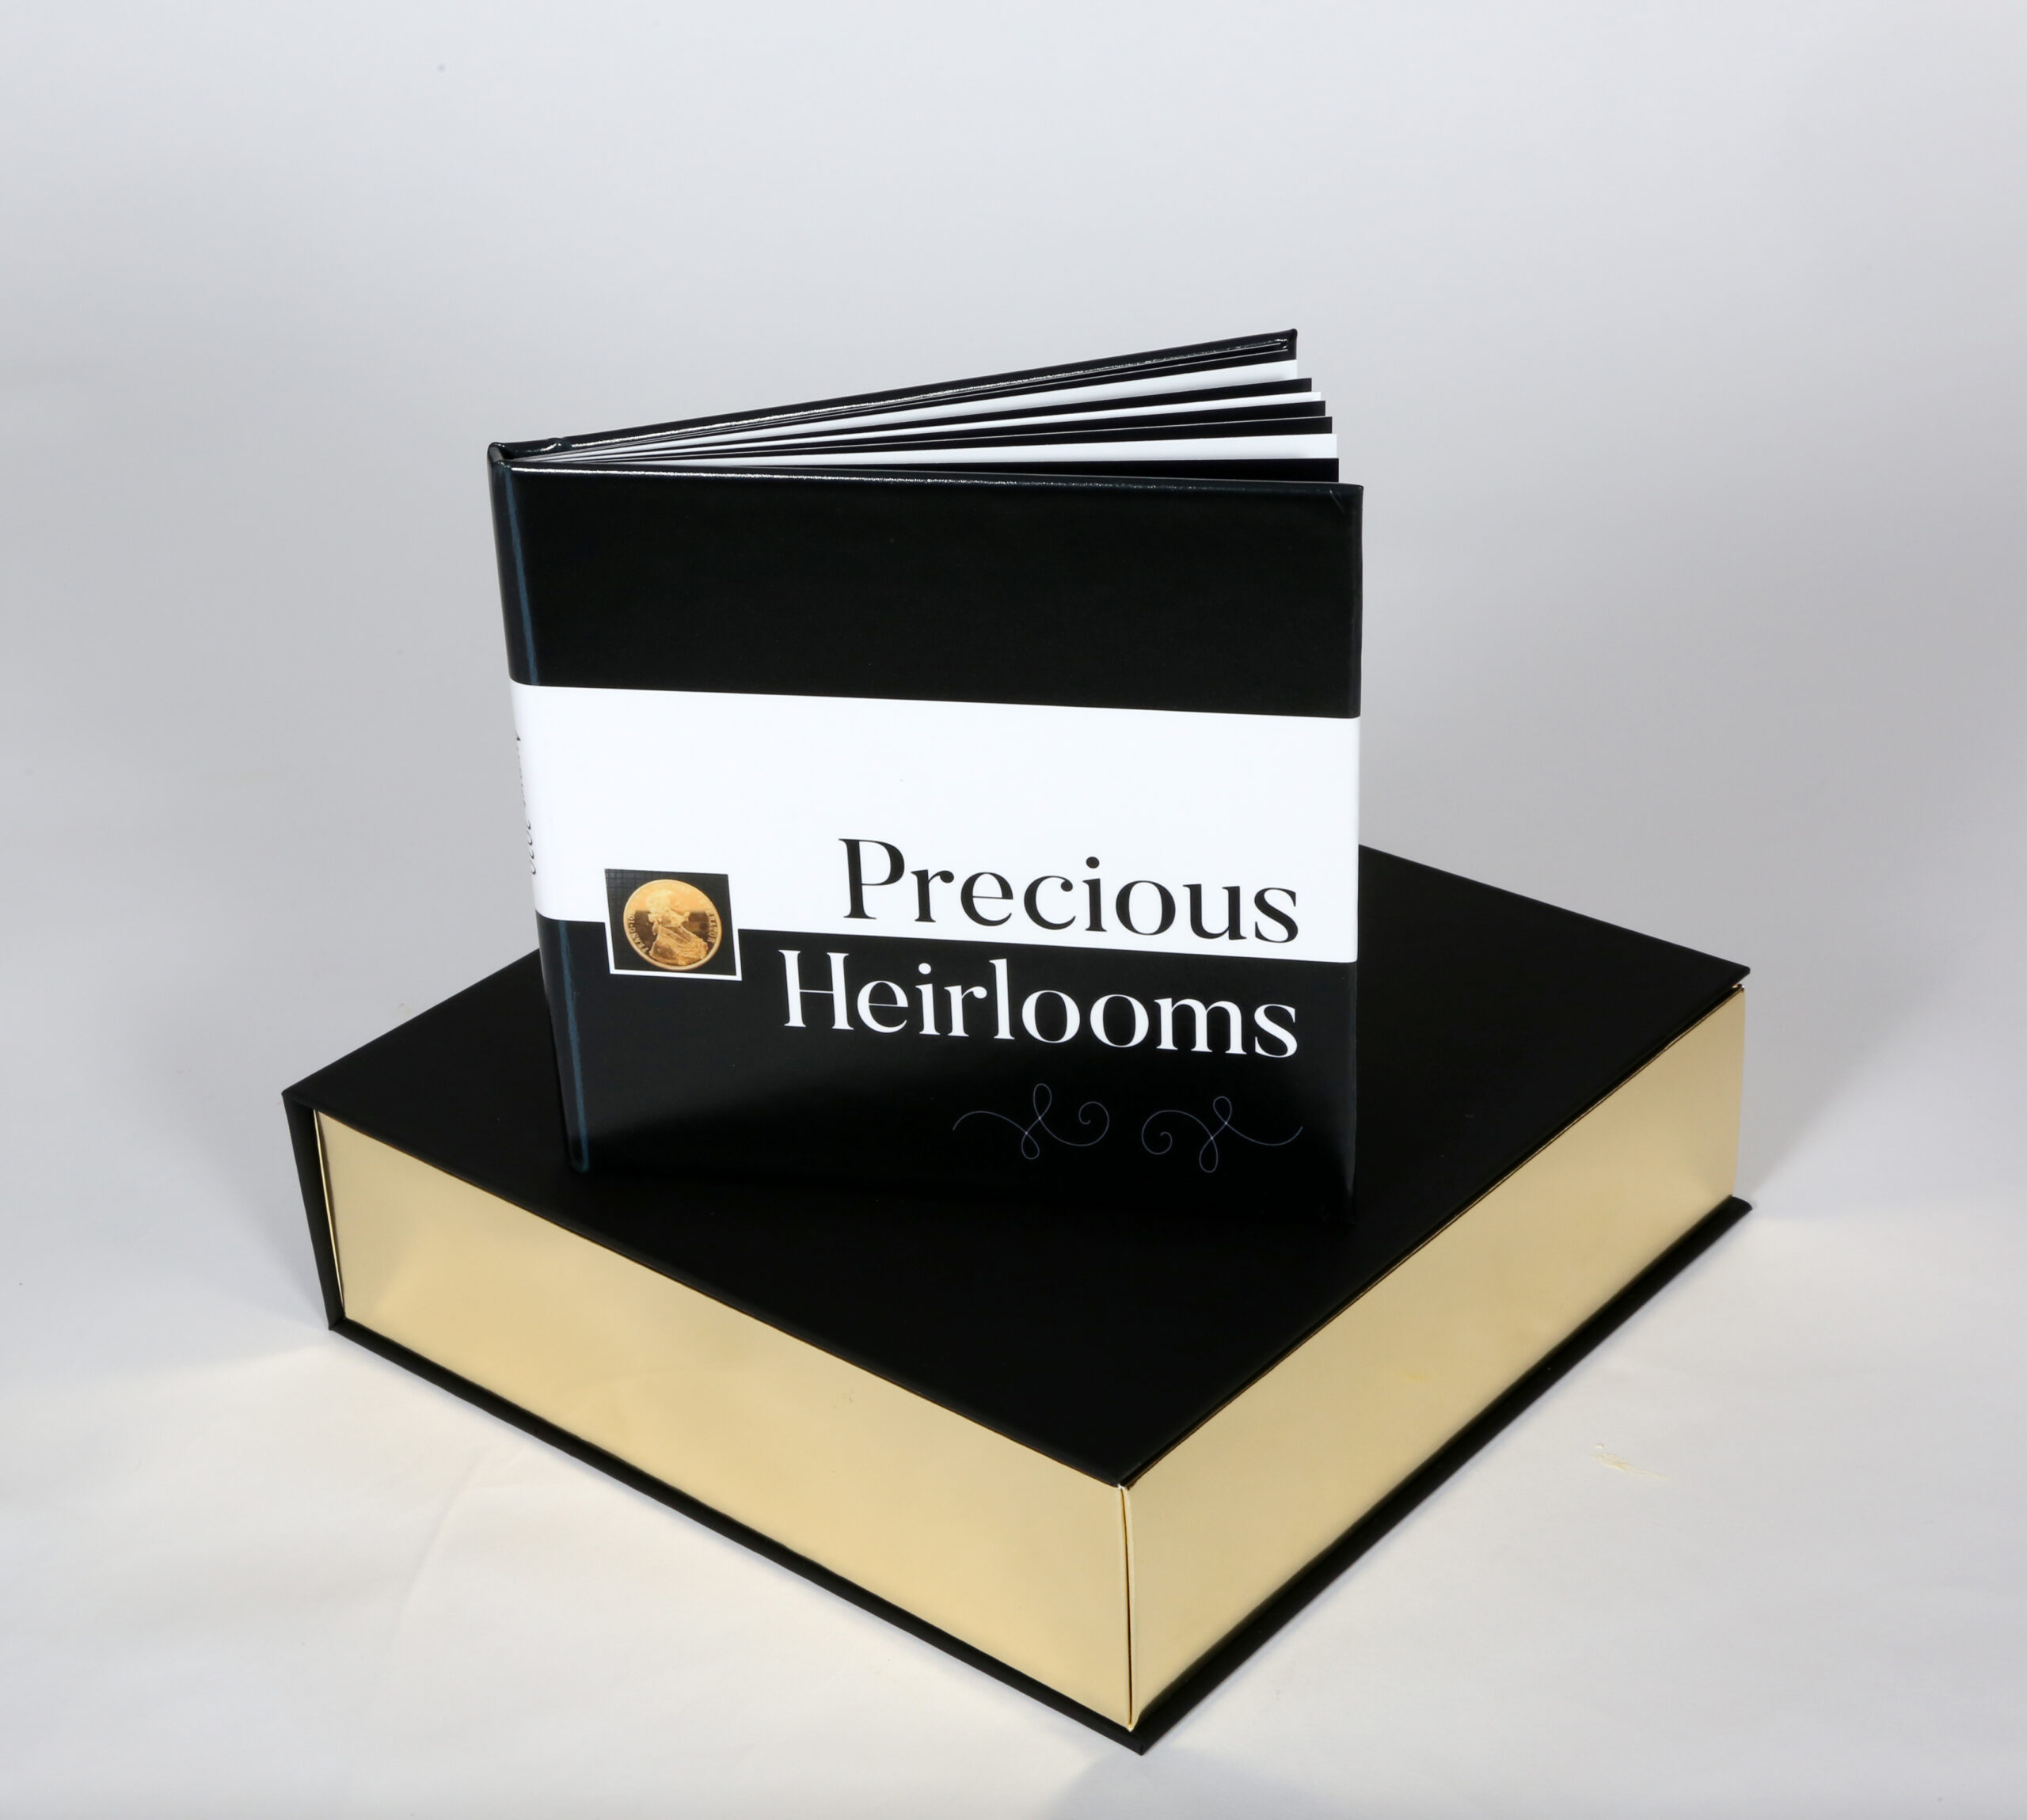 Small coffee table book on decorative box.